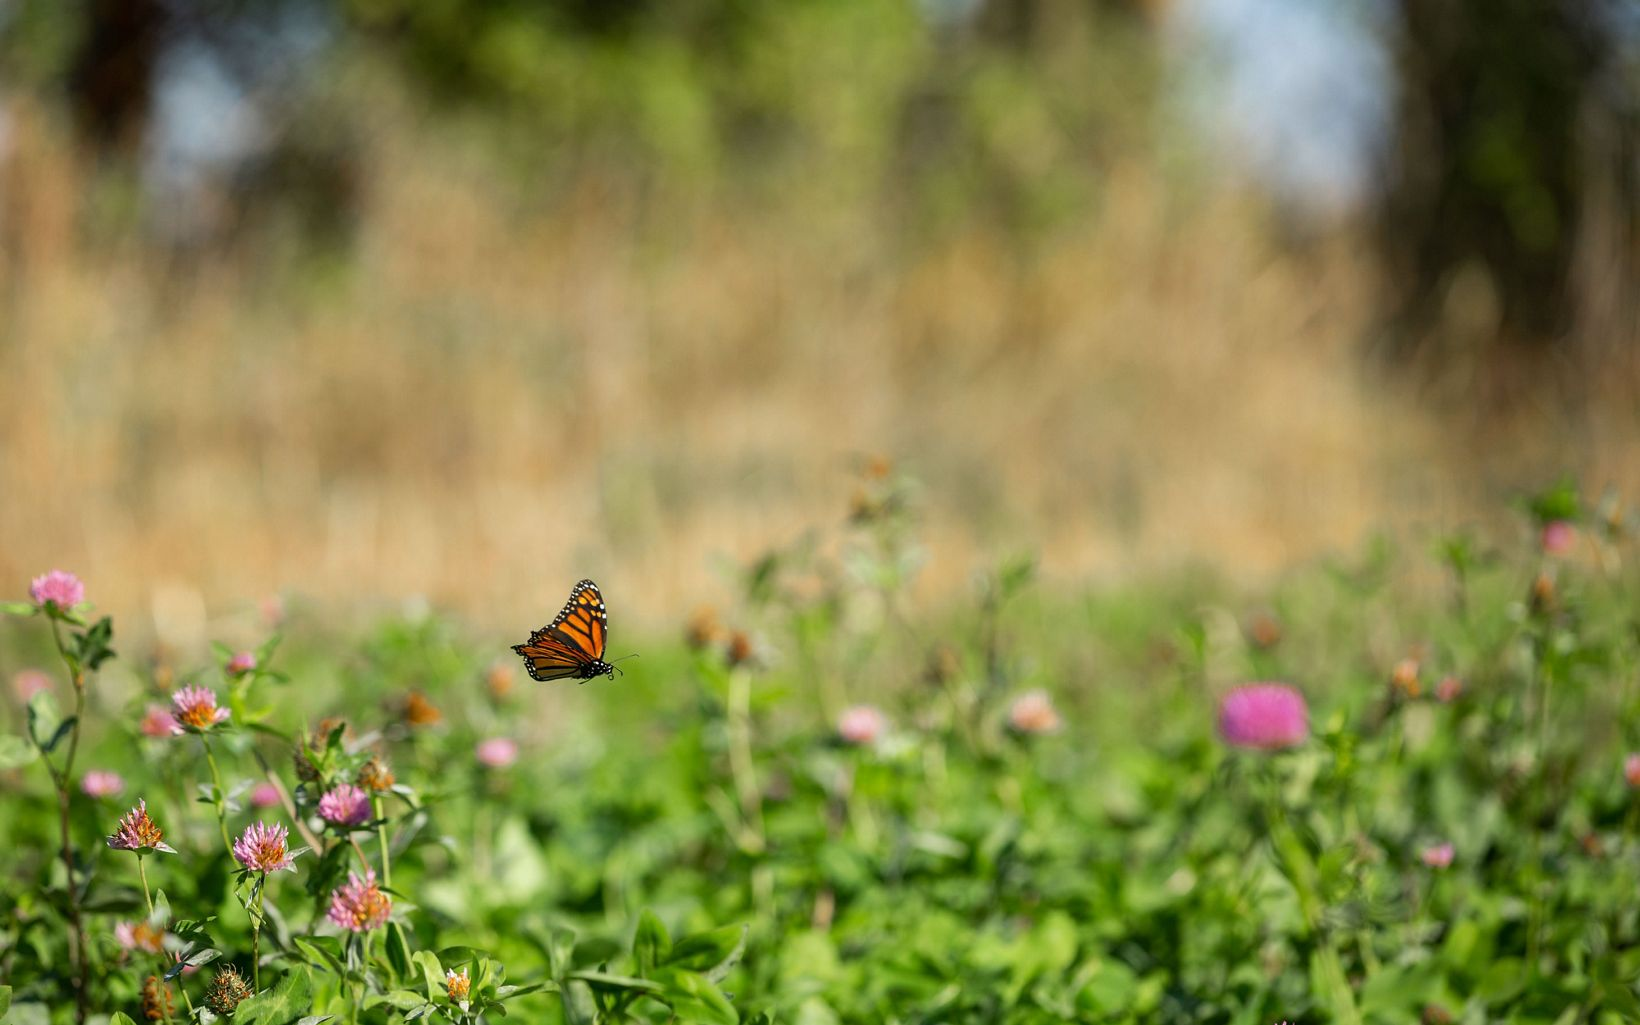 A butterfly flies over flowers